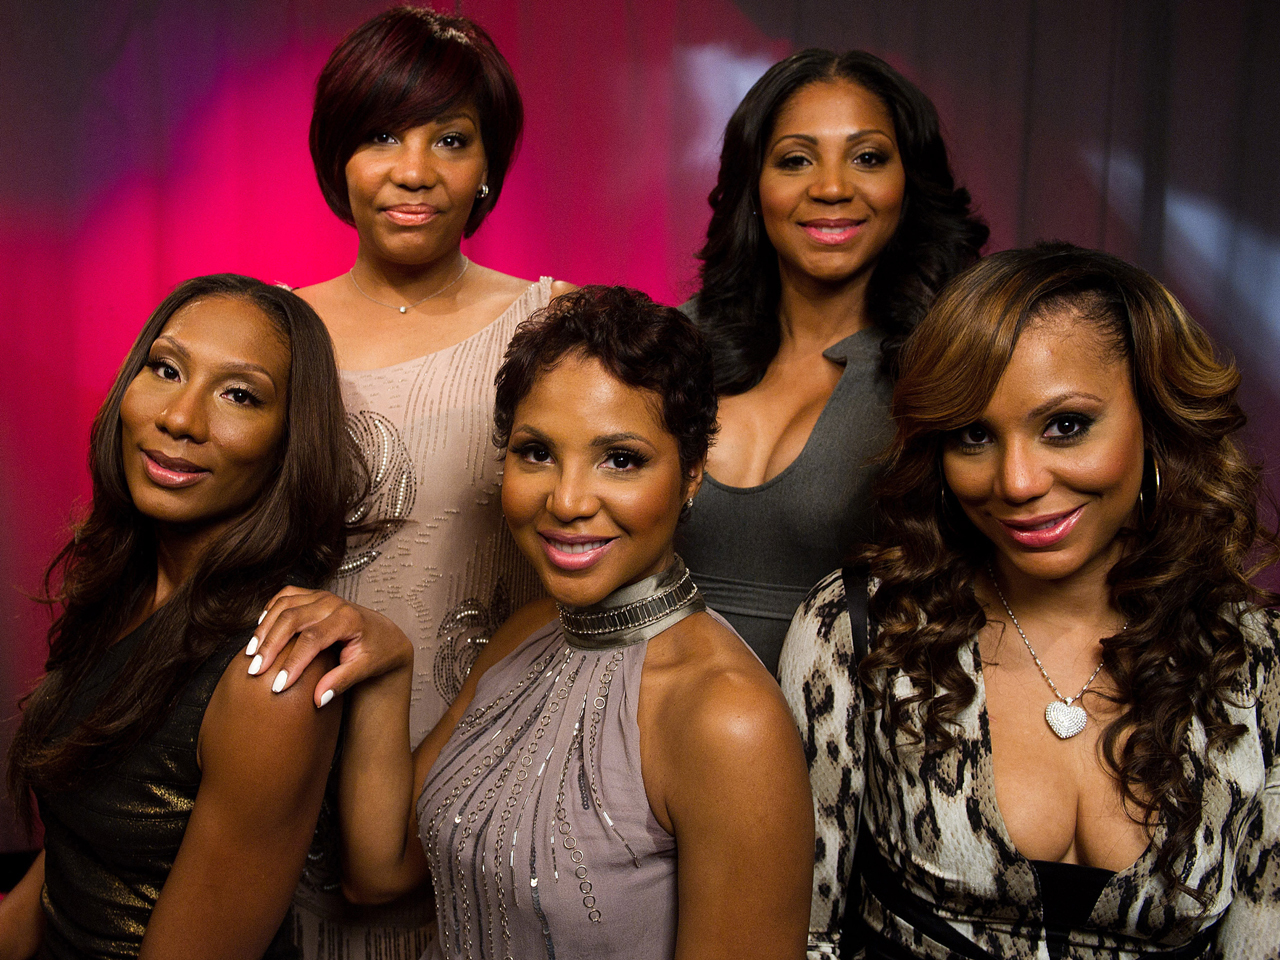 Toni Braxton Addressed The Braxton Family Values And Shares The Tabu Topic